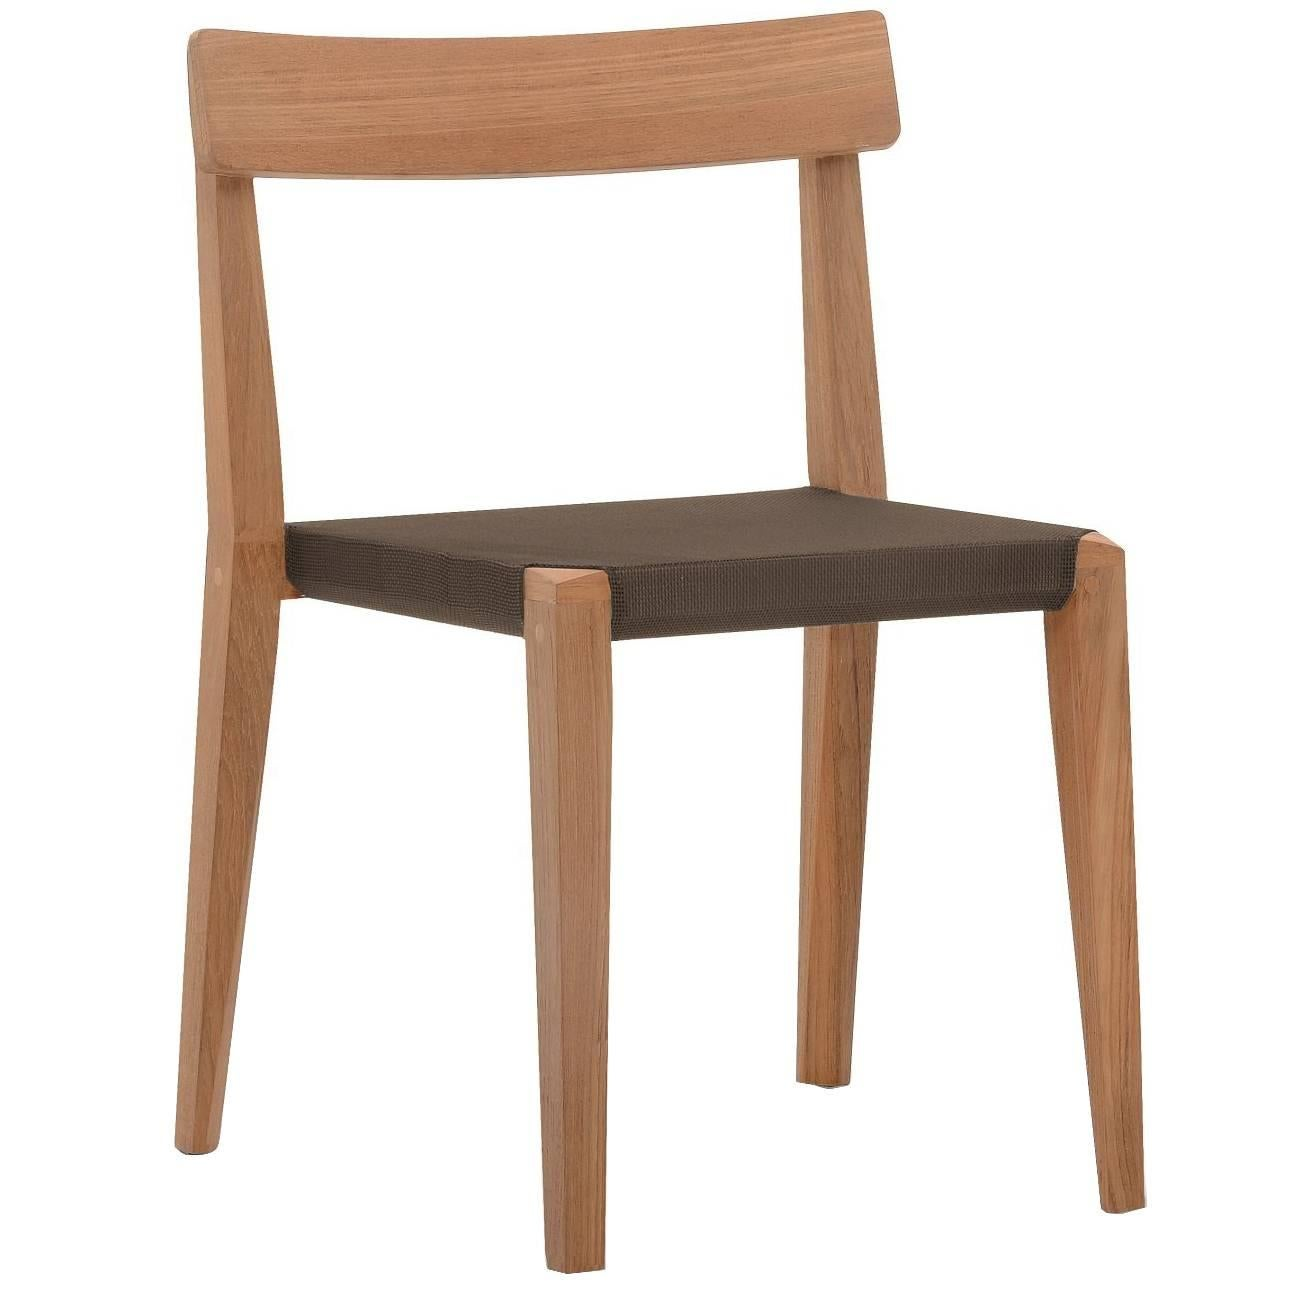 Roda Teka 171 Indoor/Outdoor Stacking Chair Designed By Gordon Guillaumier  For Sale